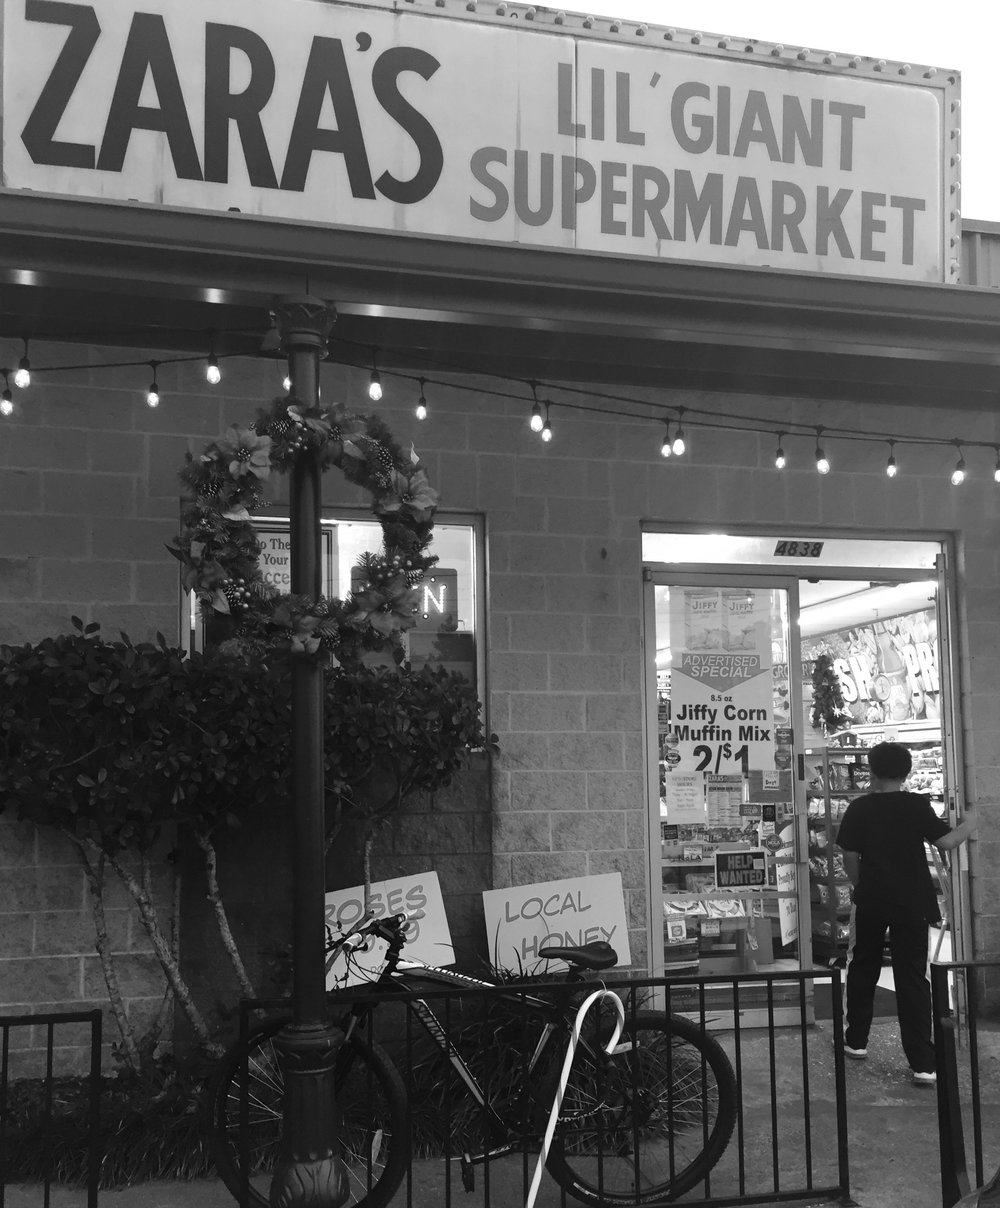 Zara's Lil Giant Supermarket, where Roechelle Cox worked for about three years. (Photo courtesy author.)